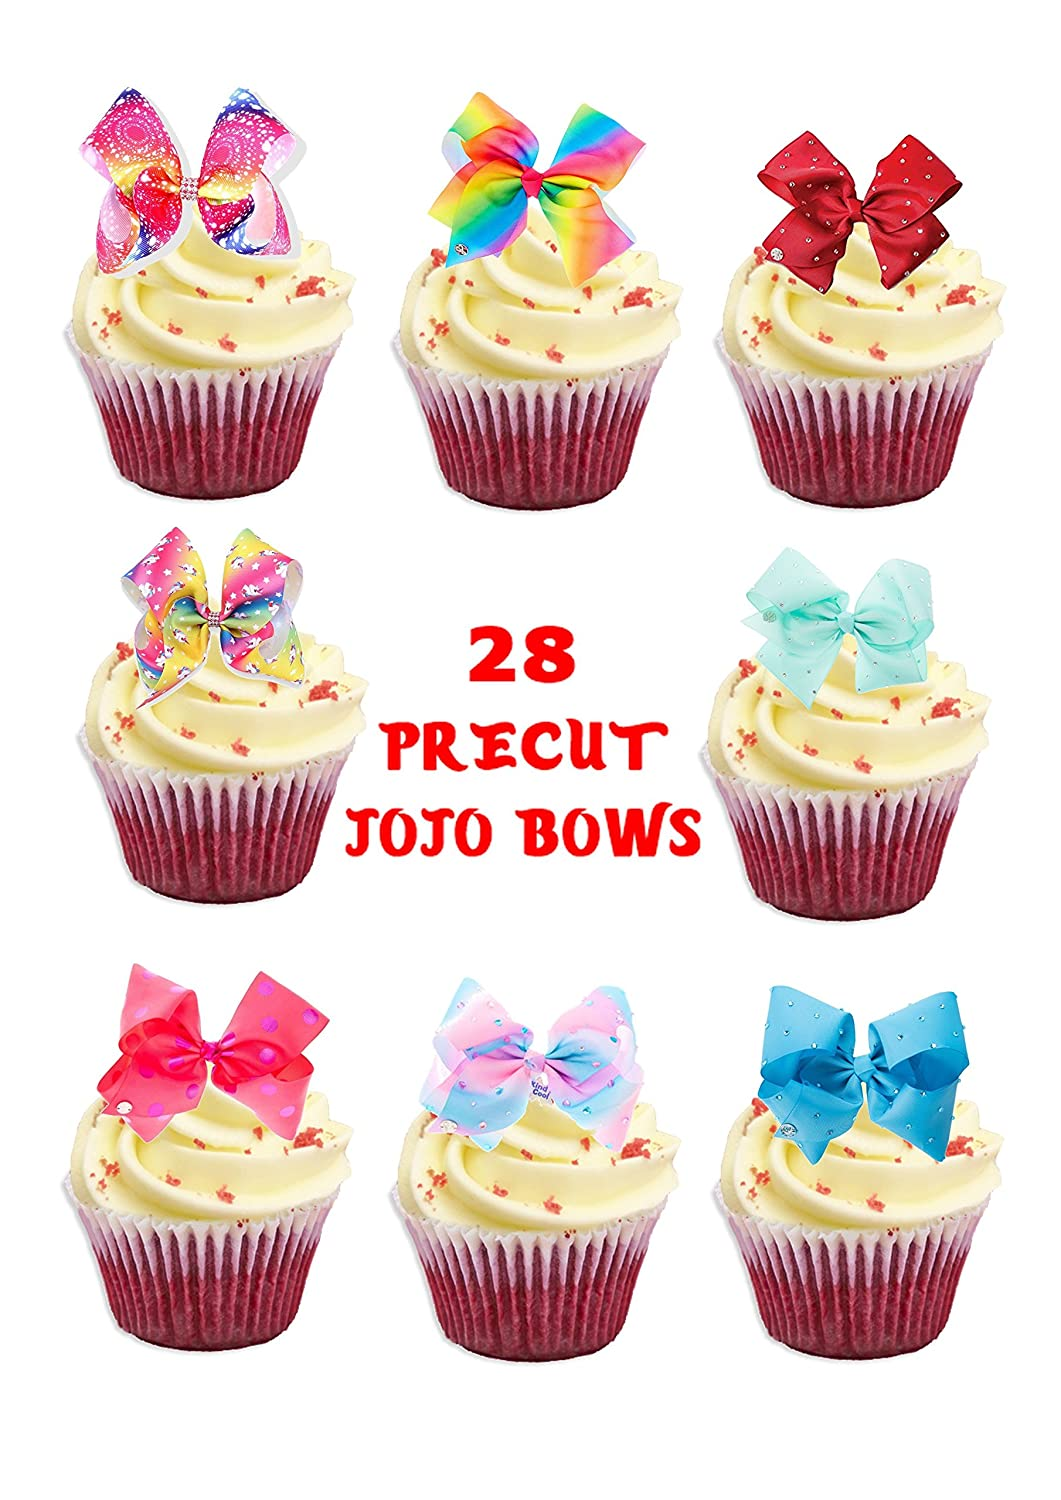 28 x JoJo Bows Bow Stand UP precut Edible Cupcake Topper Birthday Cake Topper channys cake toppers